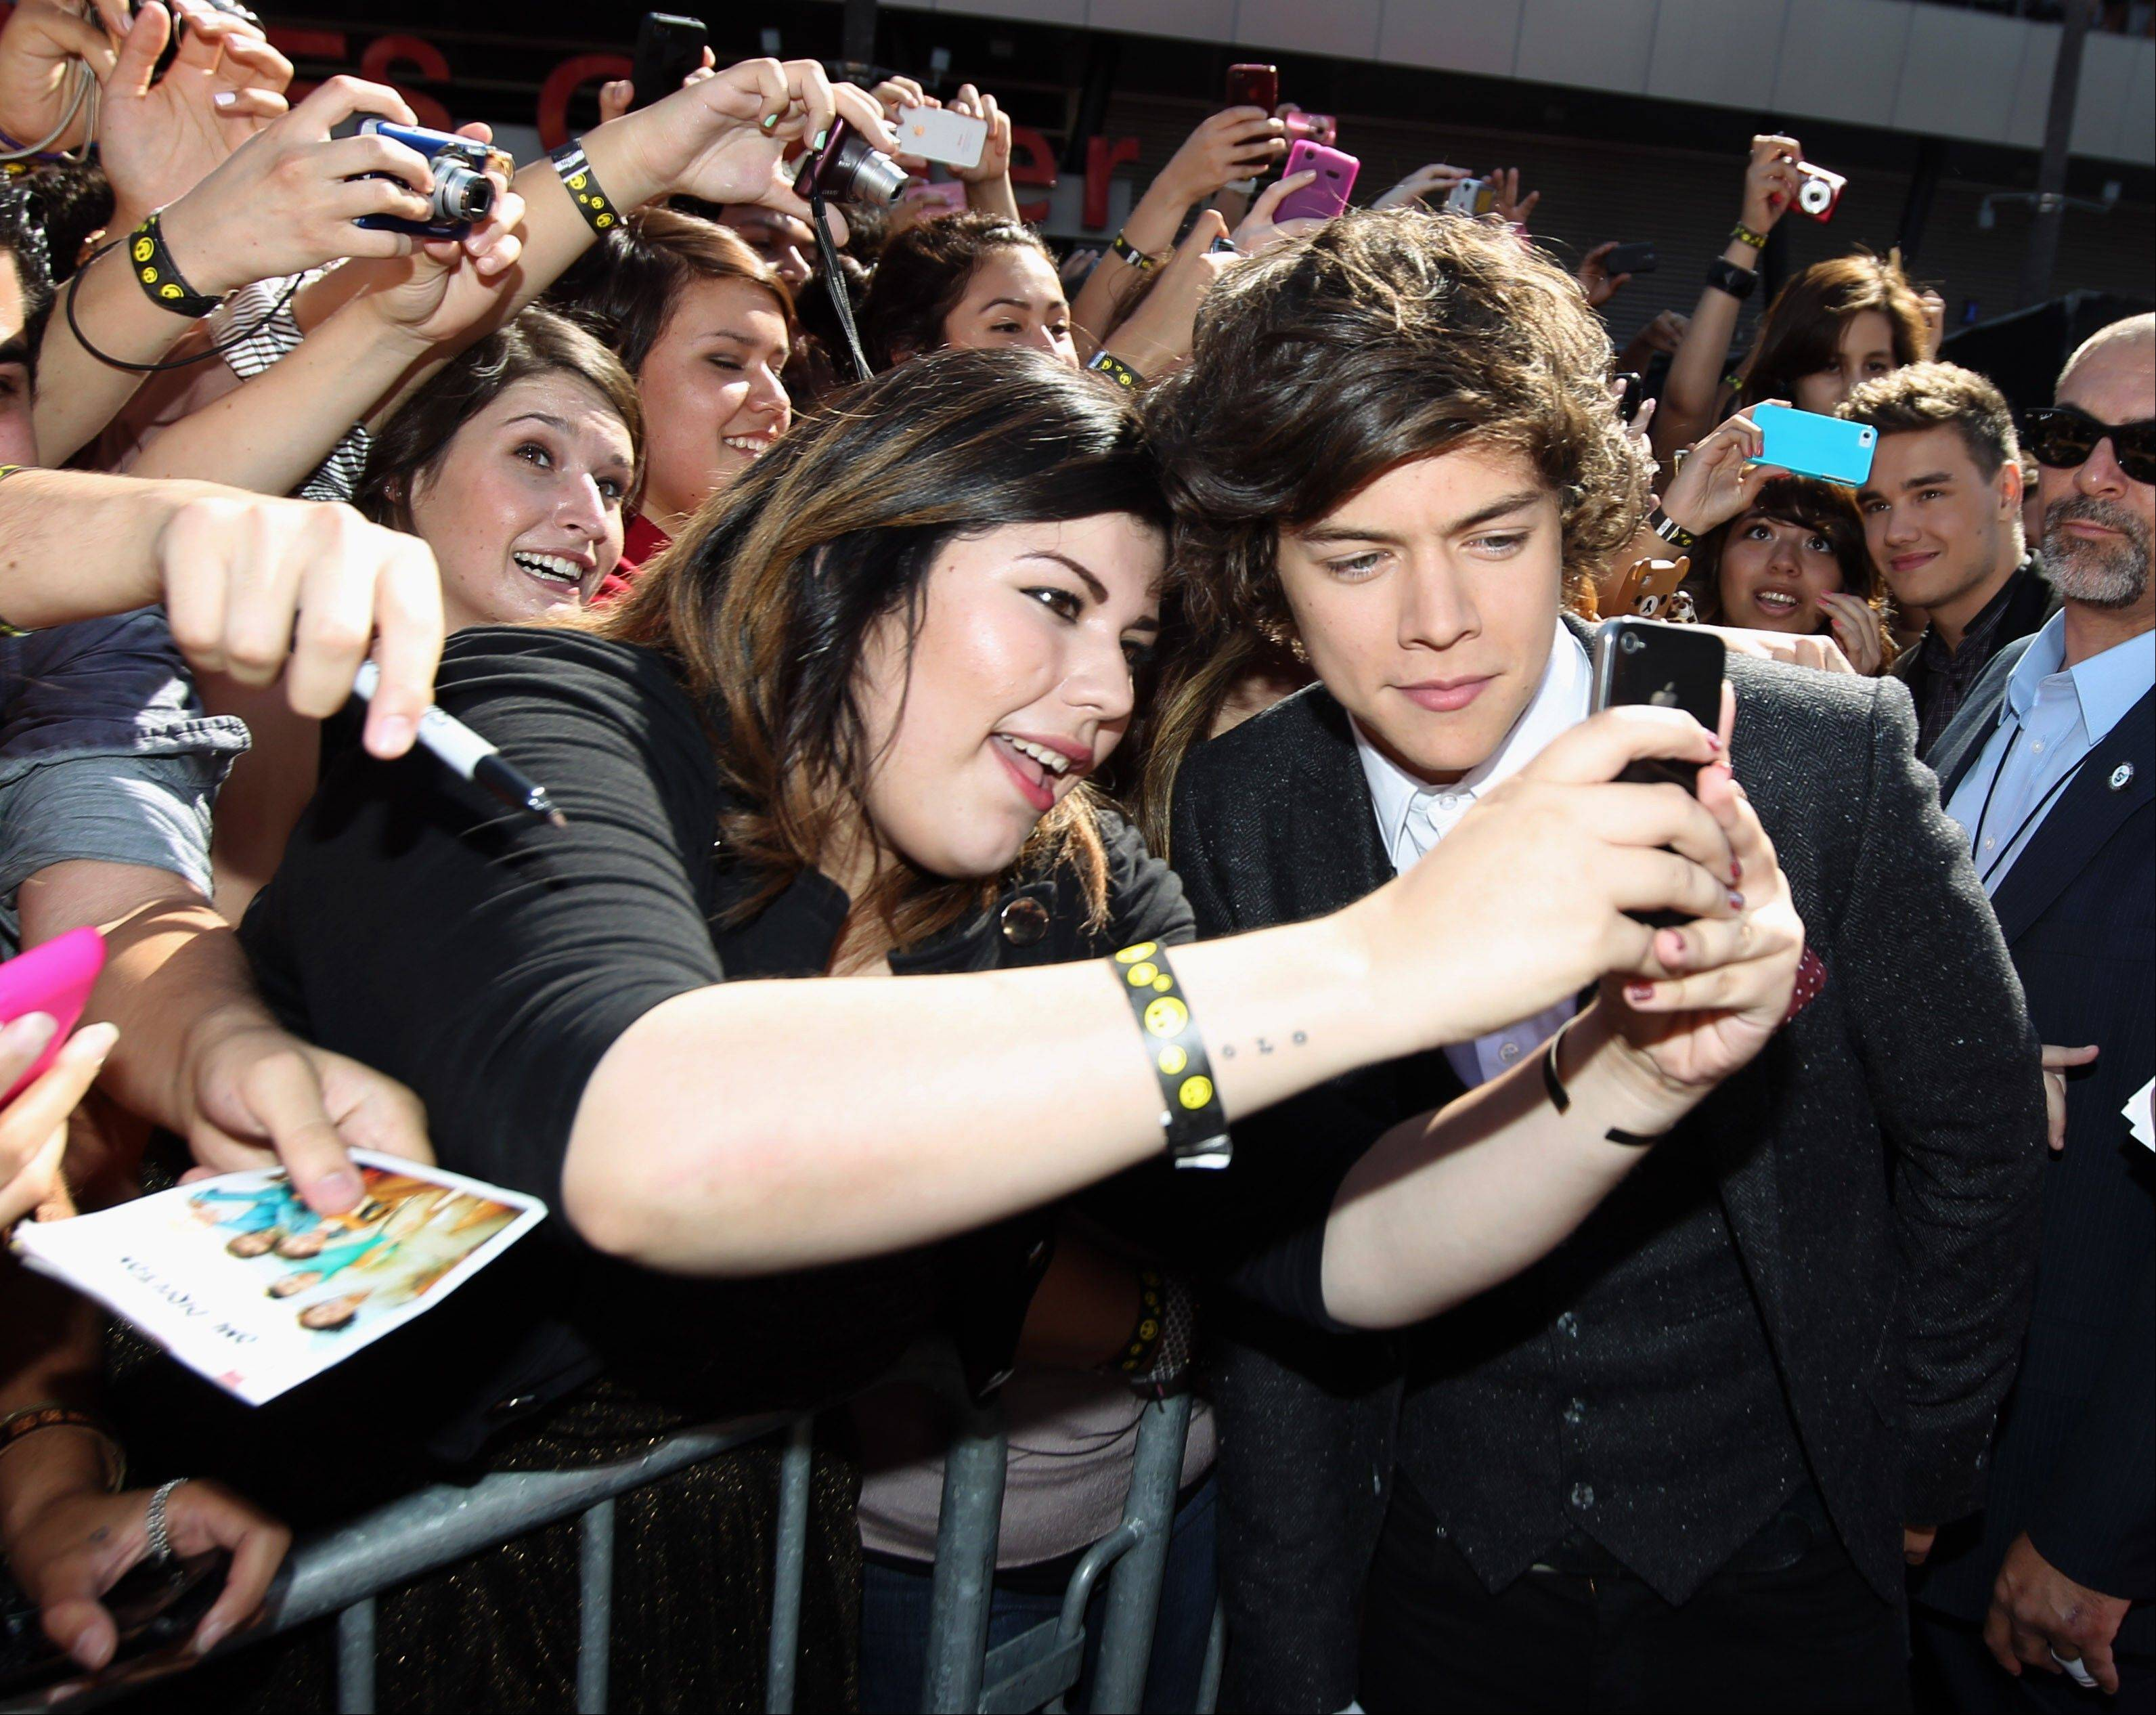 Harry Styles, right, of the British band One Direction greets fans at the MTV Video Music Awards on Thursday, Sept. 6, 2012, in Los Angeles.